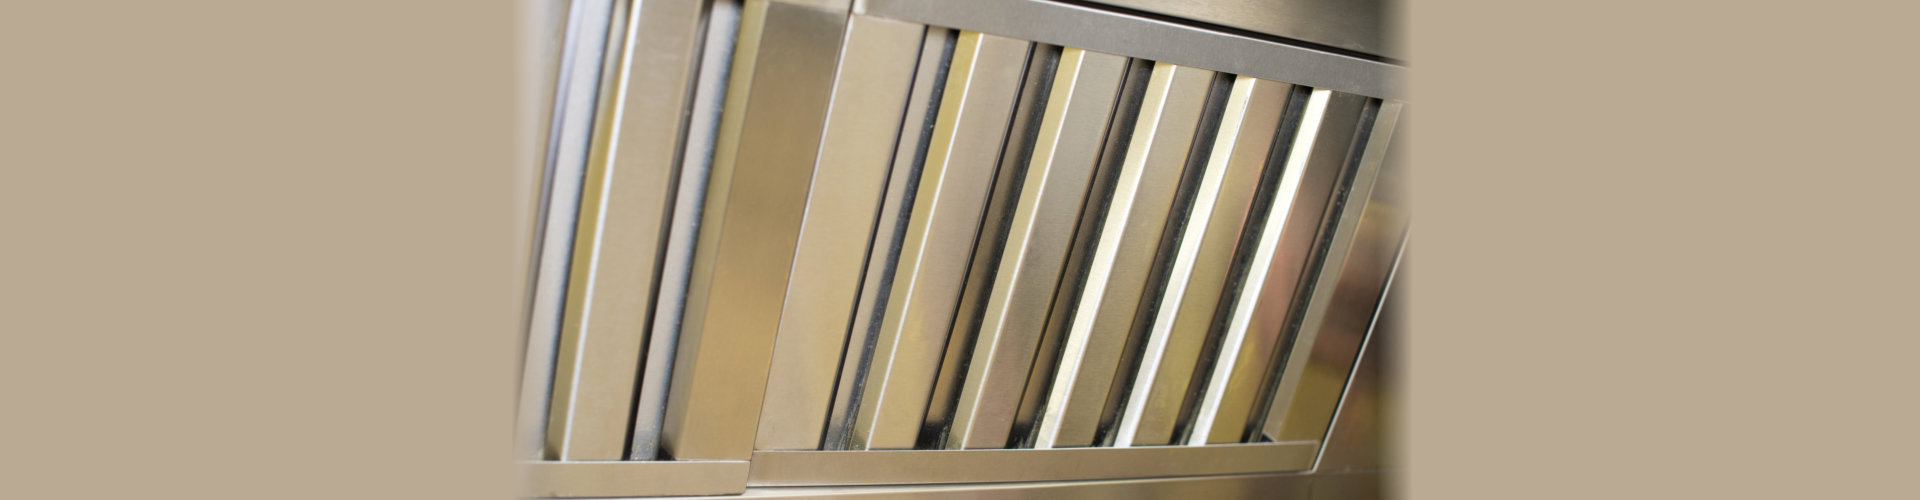 exhaust systems, hood filters detail in a professional kitchen. chrome, flue